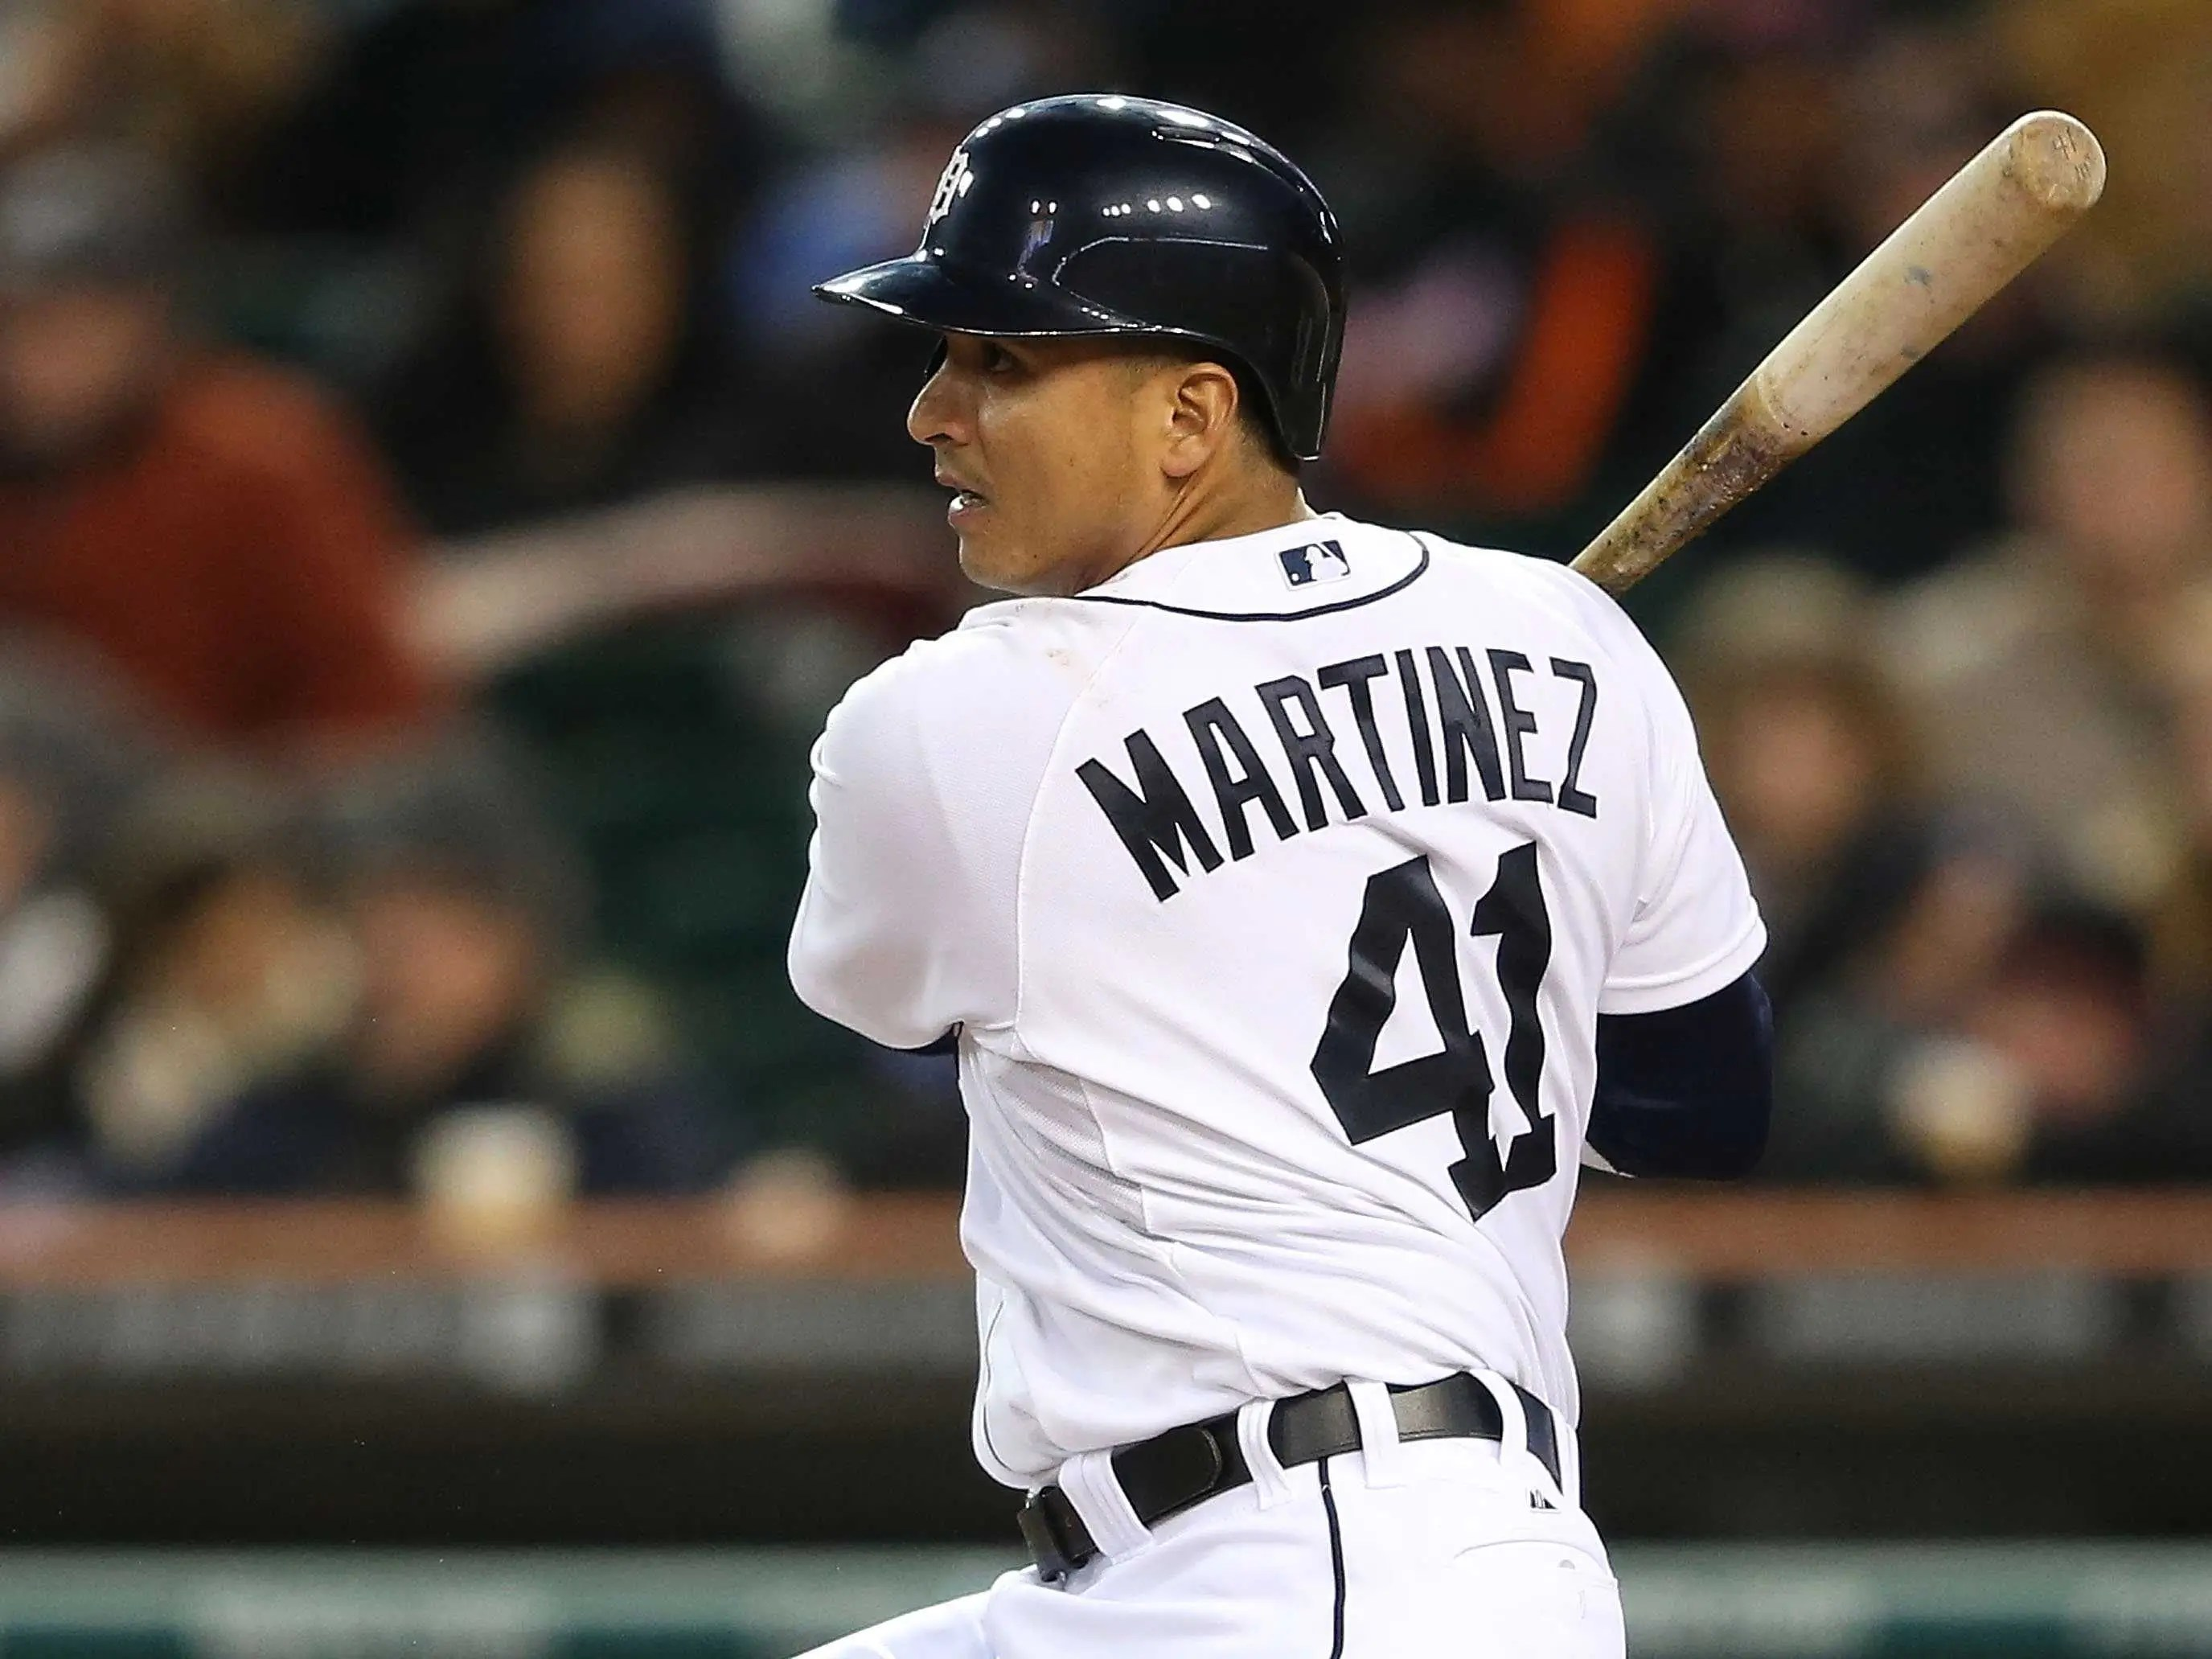 #5 Victor Martinez, Detroit Tigers